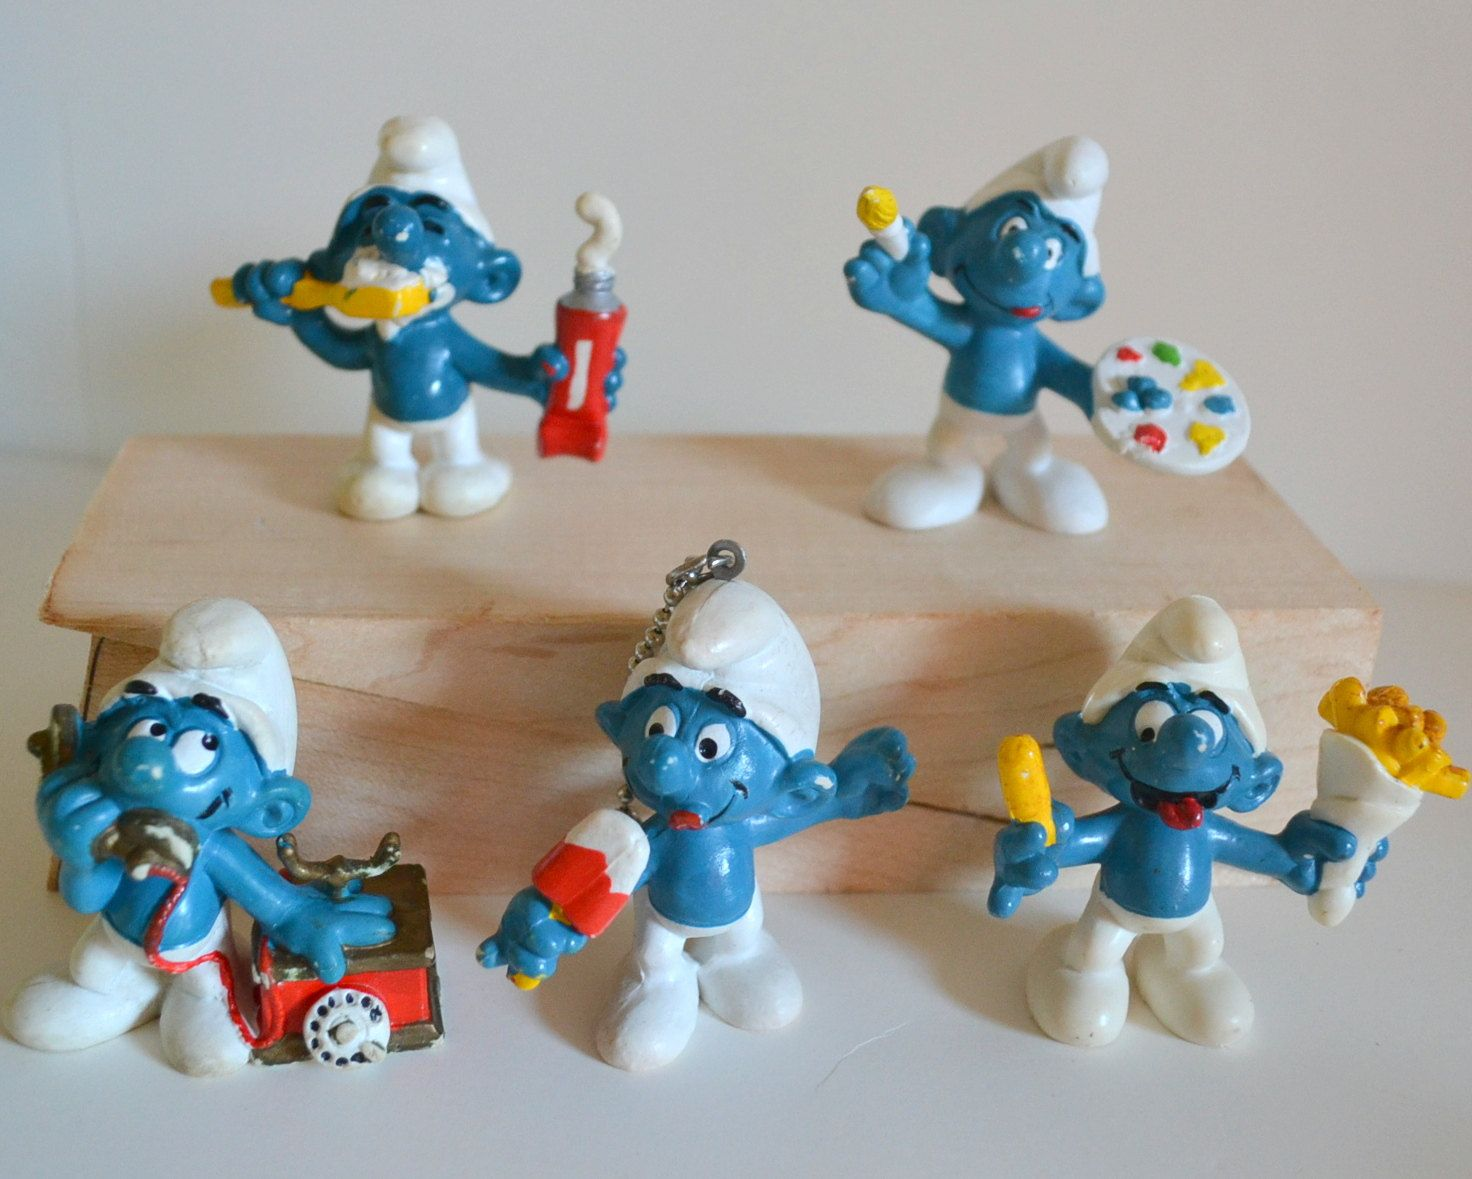 Smurfs Vintage Toys Lot Of 5 Figures Painting Food Phone Keychain